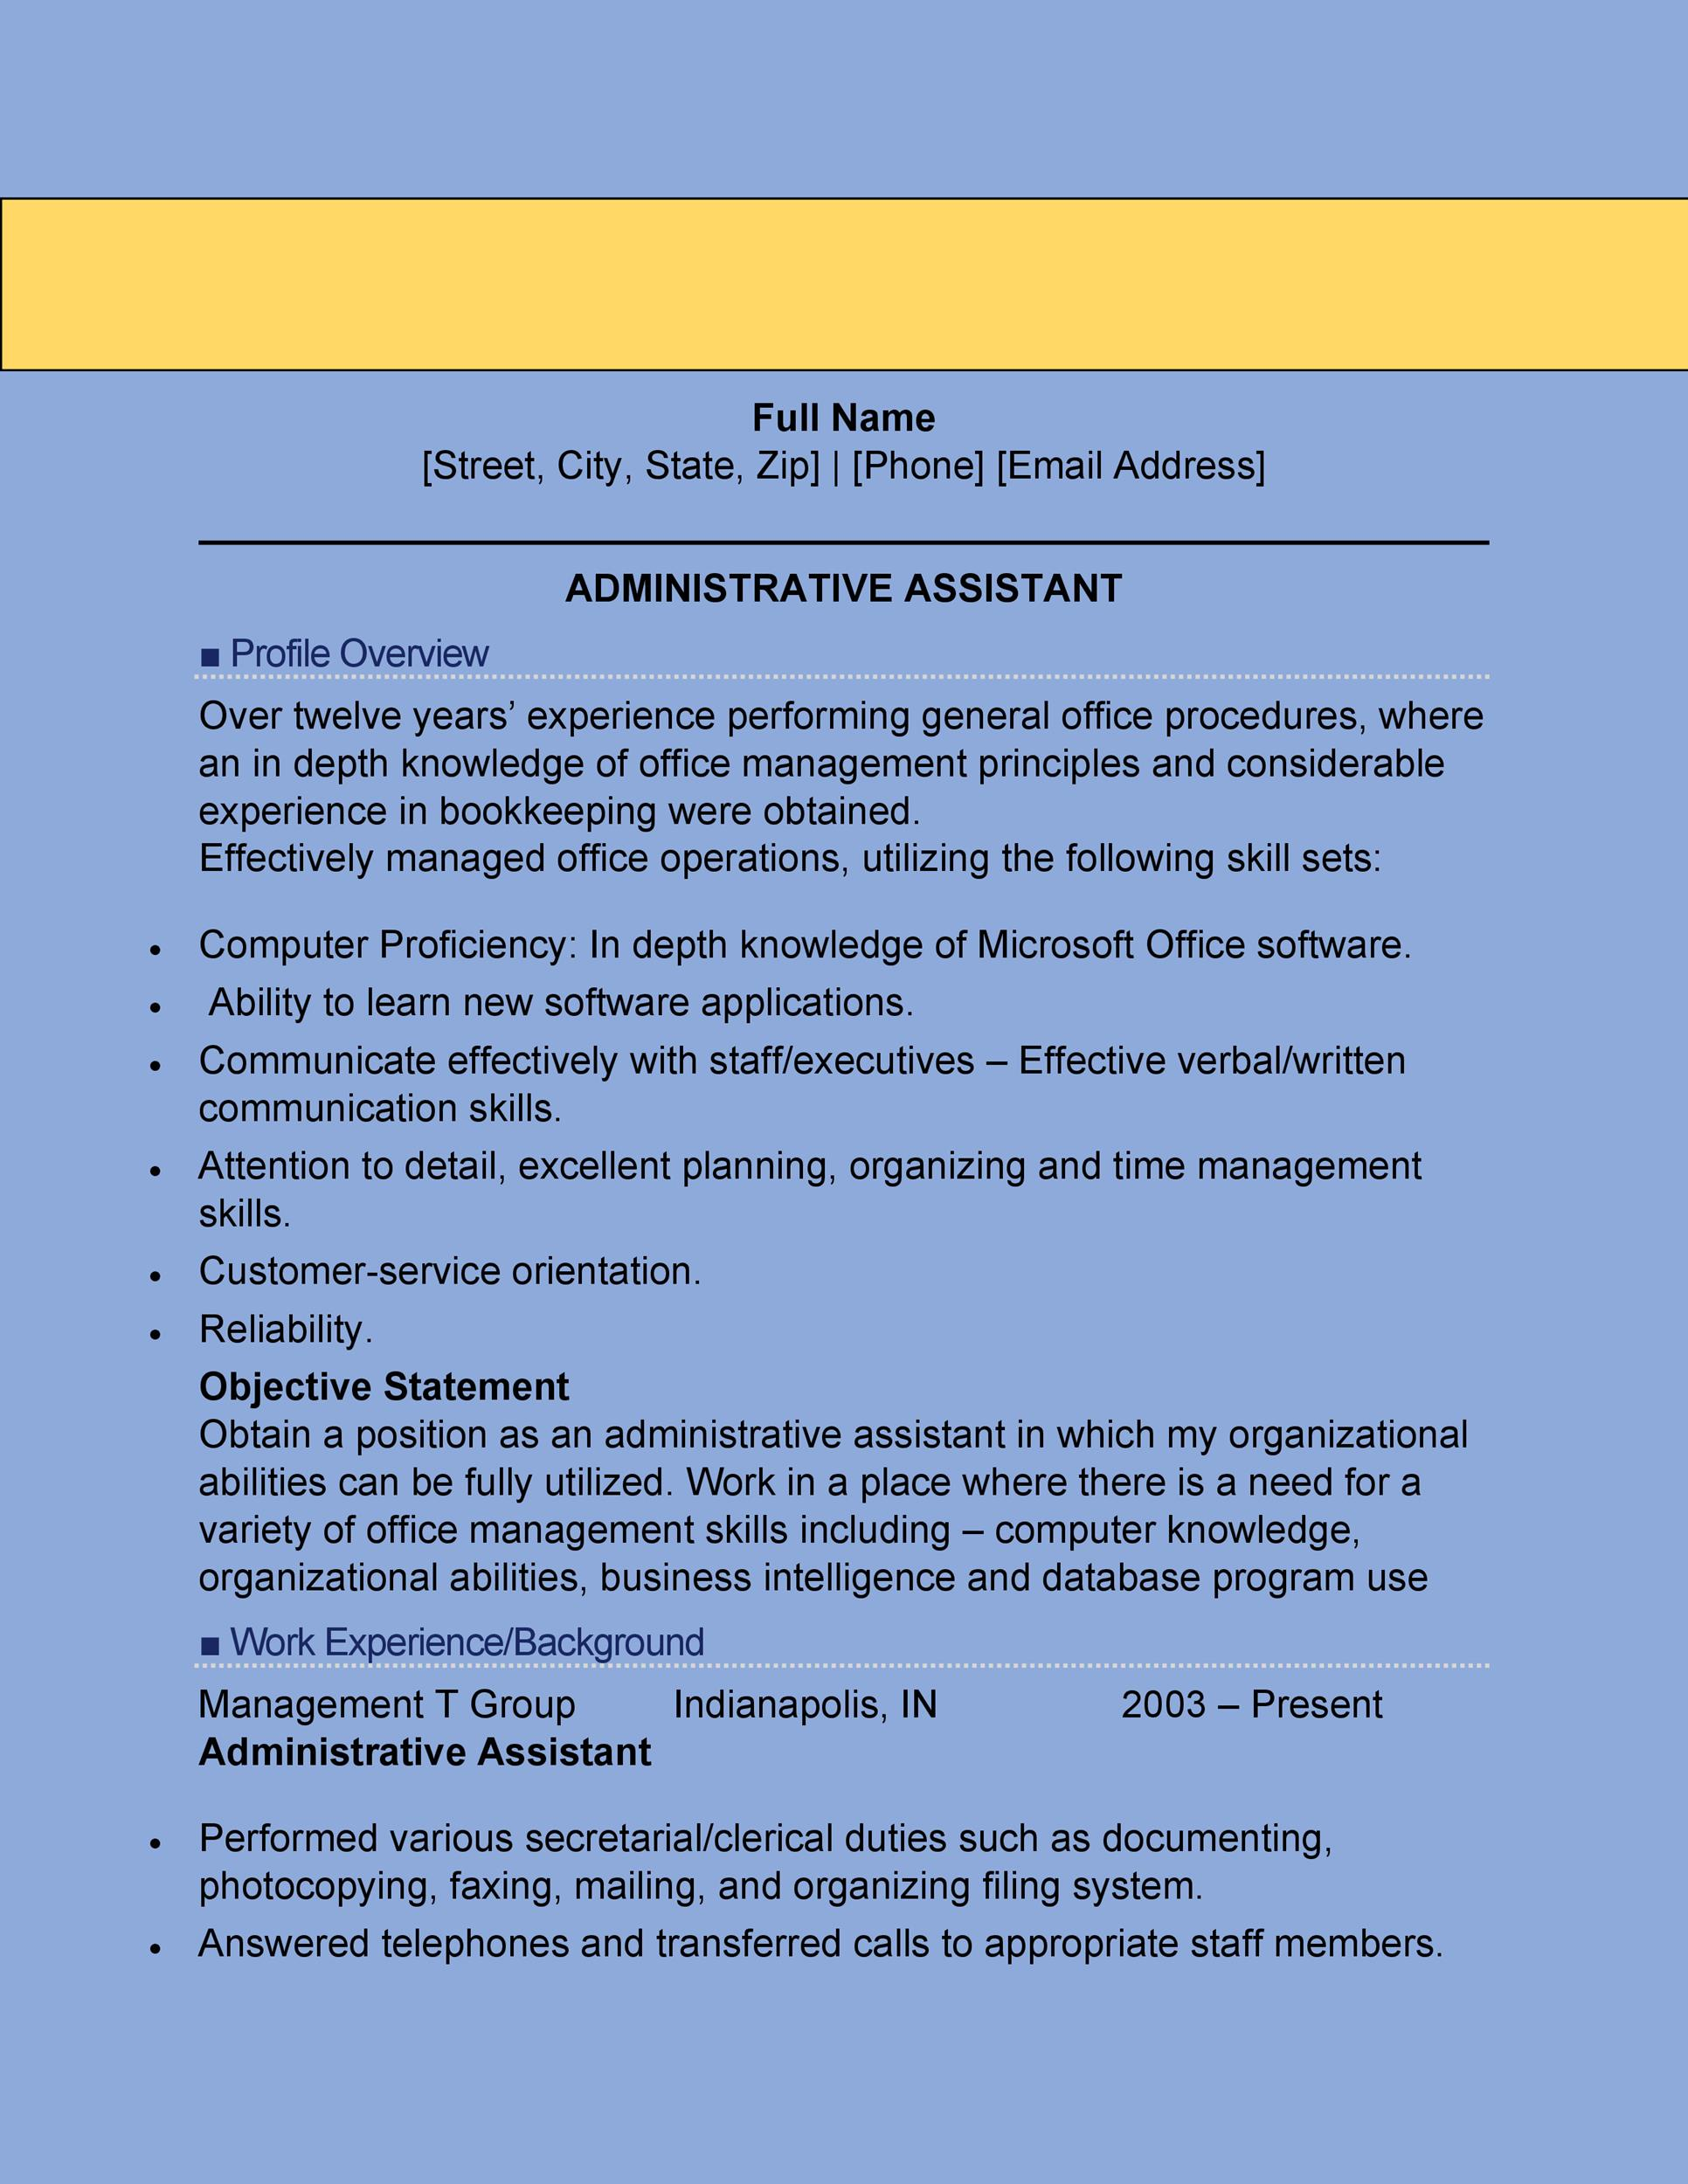 Printable Administrative Assistant Resume Template 02